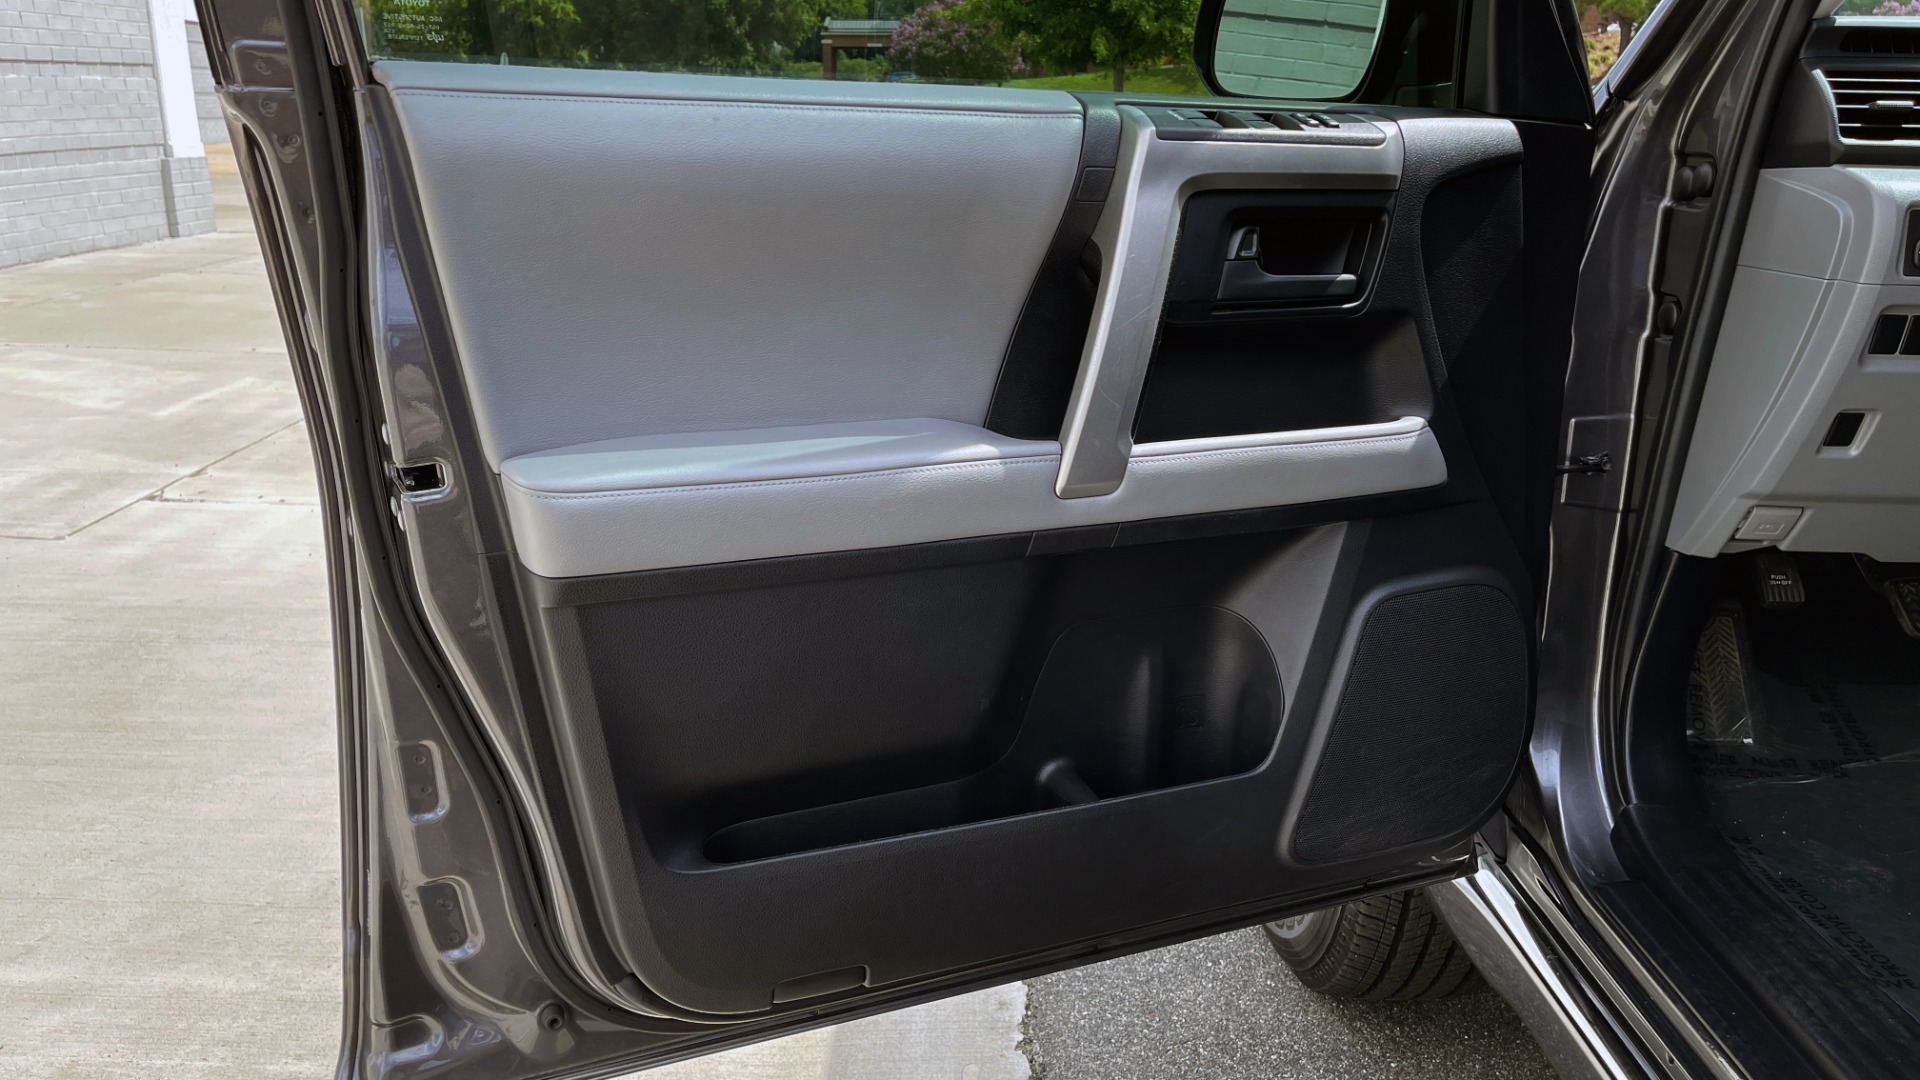 Used 2011 Toyota 4RUNNER SR5 4X4 V6 / 5-SPD AUTO / SUNROOF / POWER FRONT SEATS for sale $19,999 at Formula Imports in Charlotte NC 28227 23